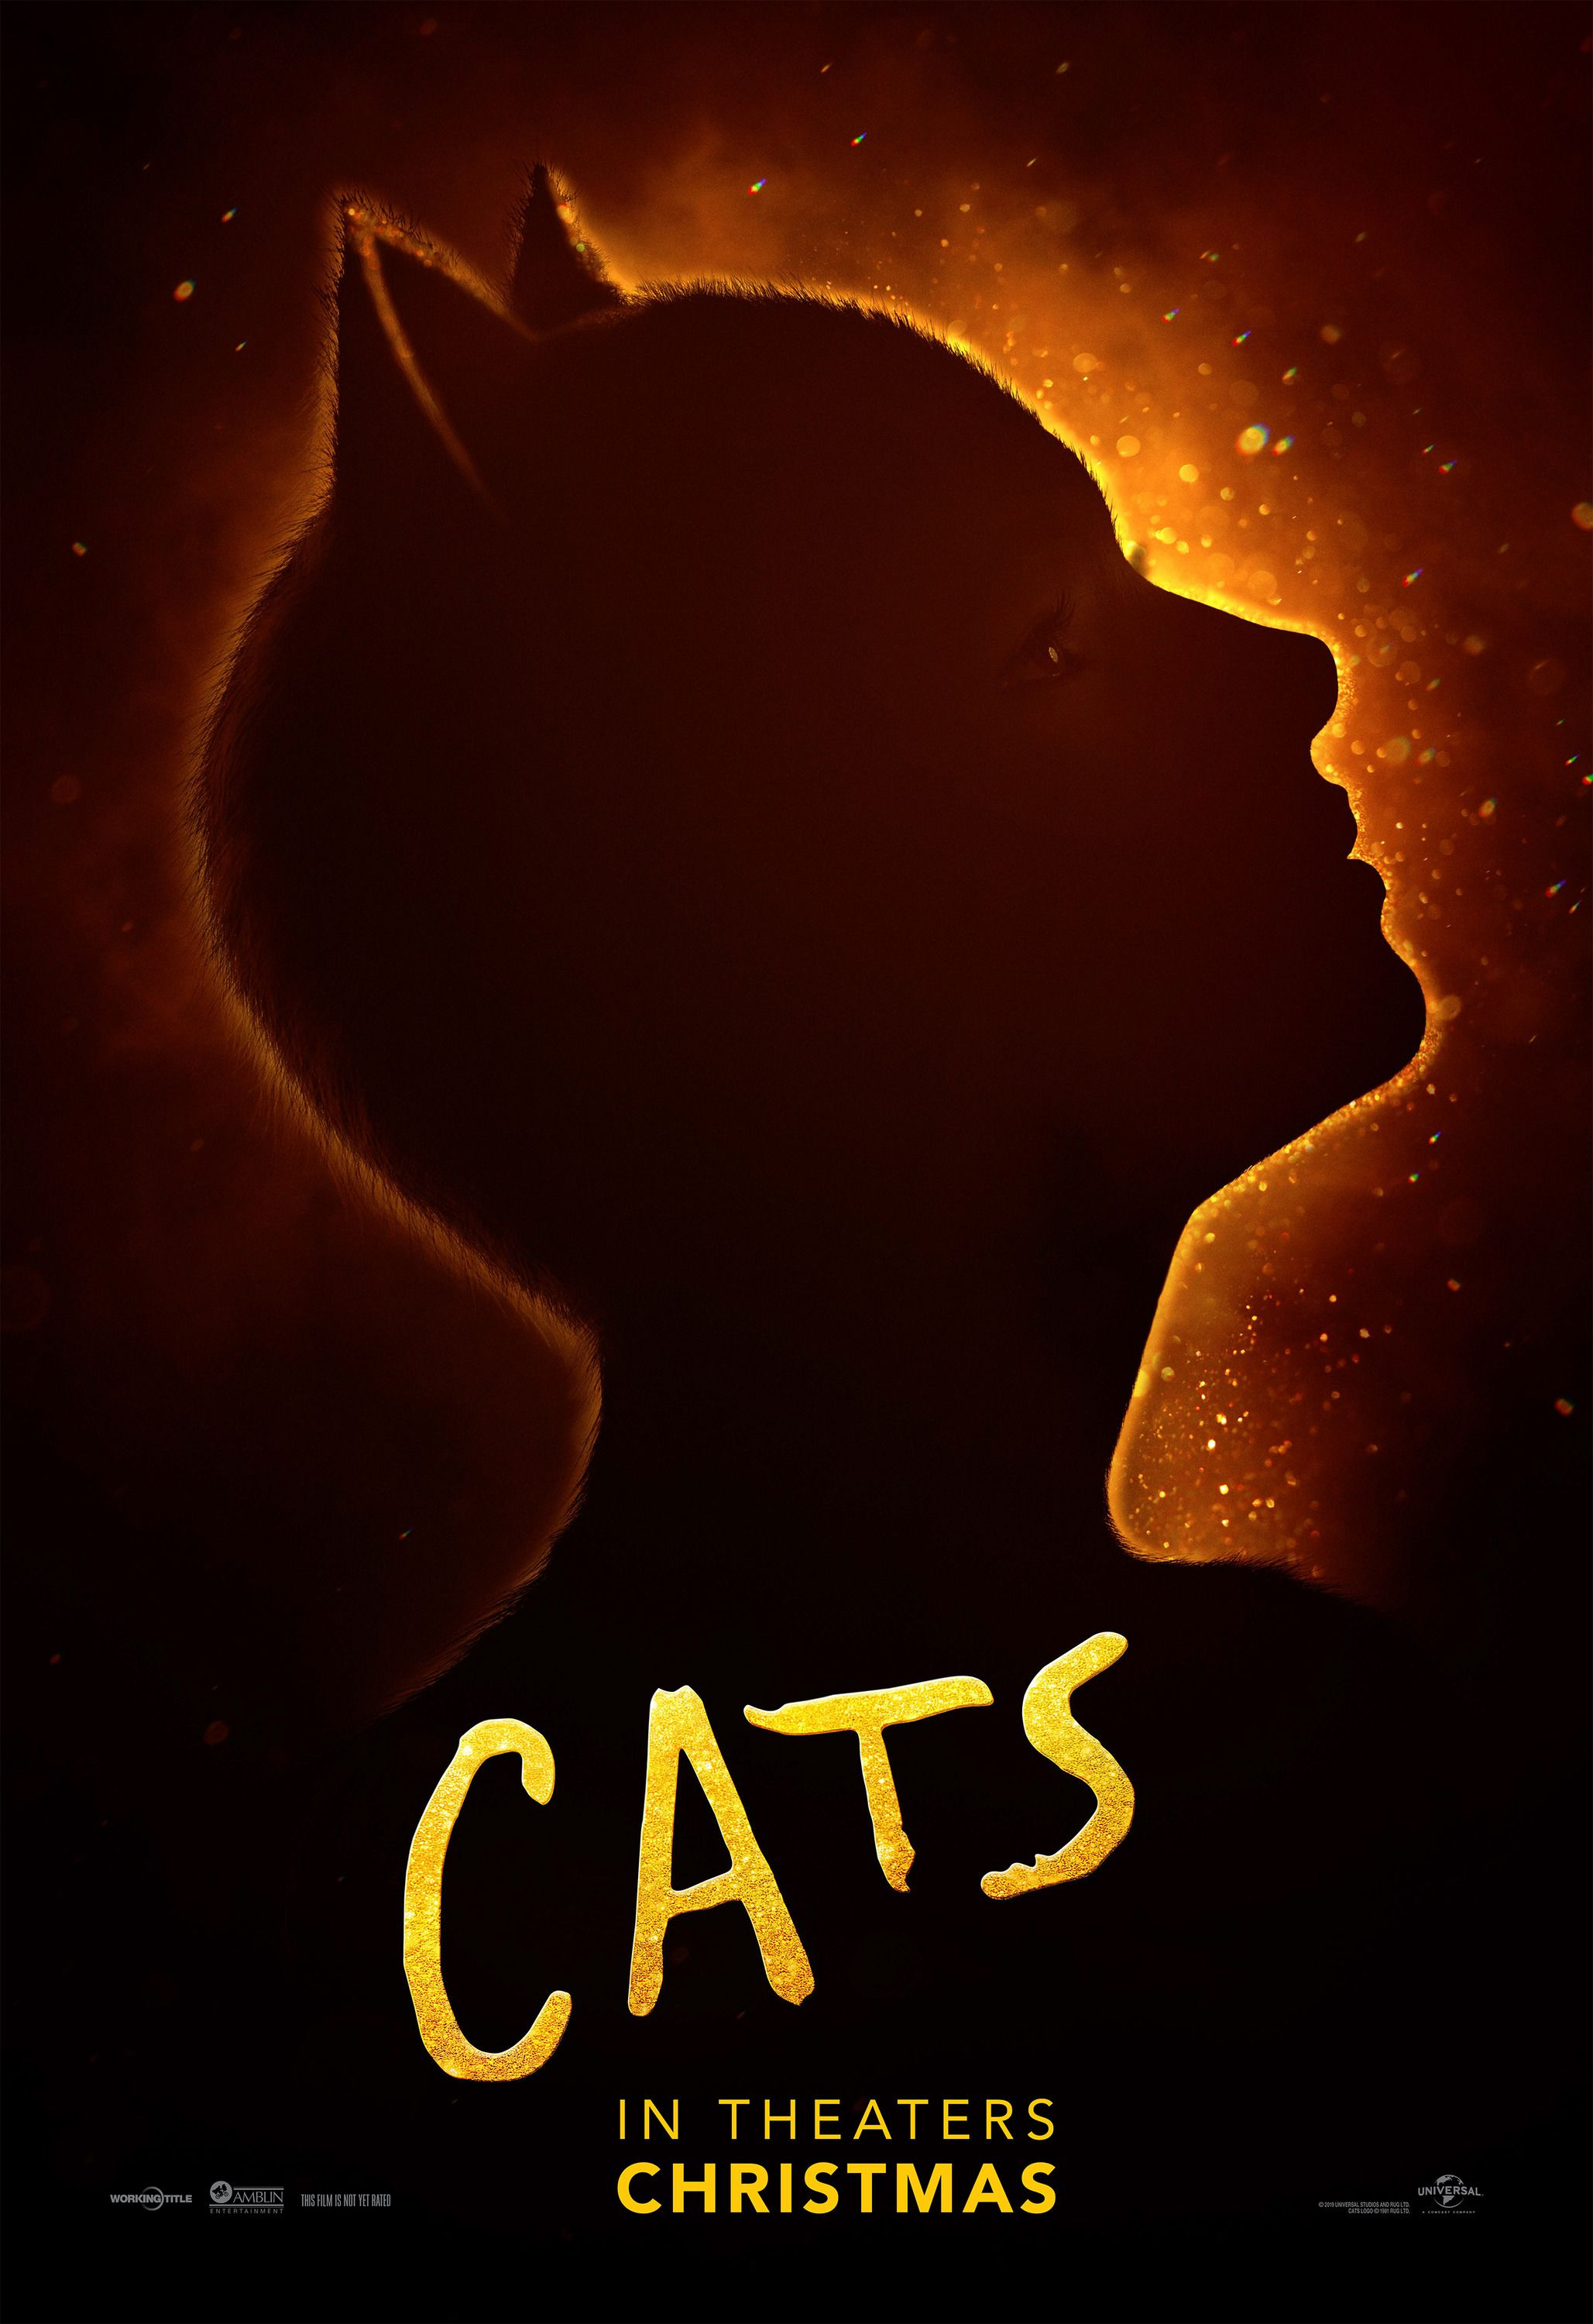 Cats (2019) Movie Posters Cat movie, Movie posters